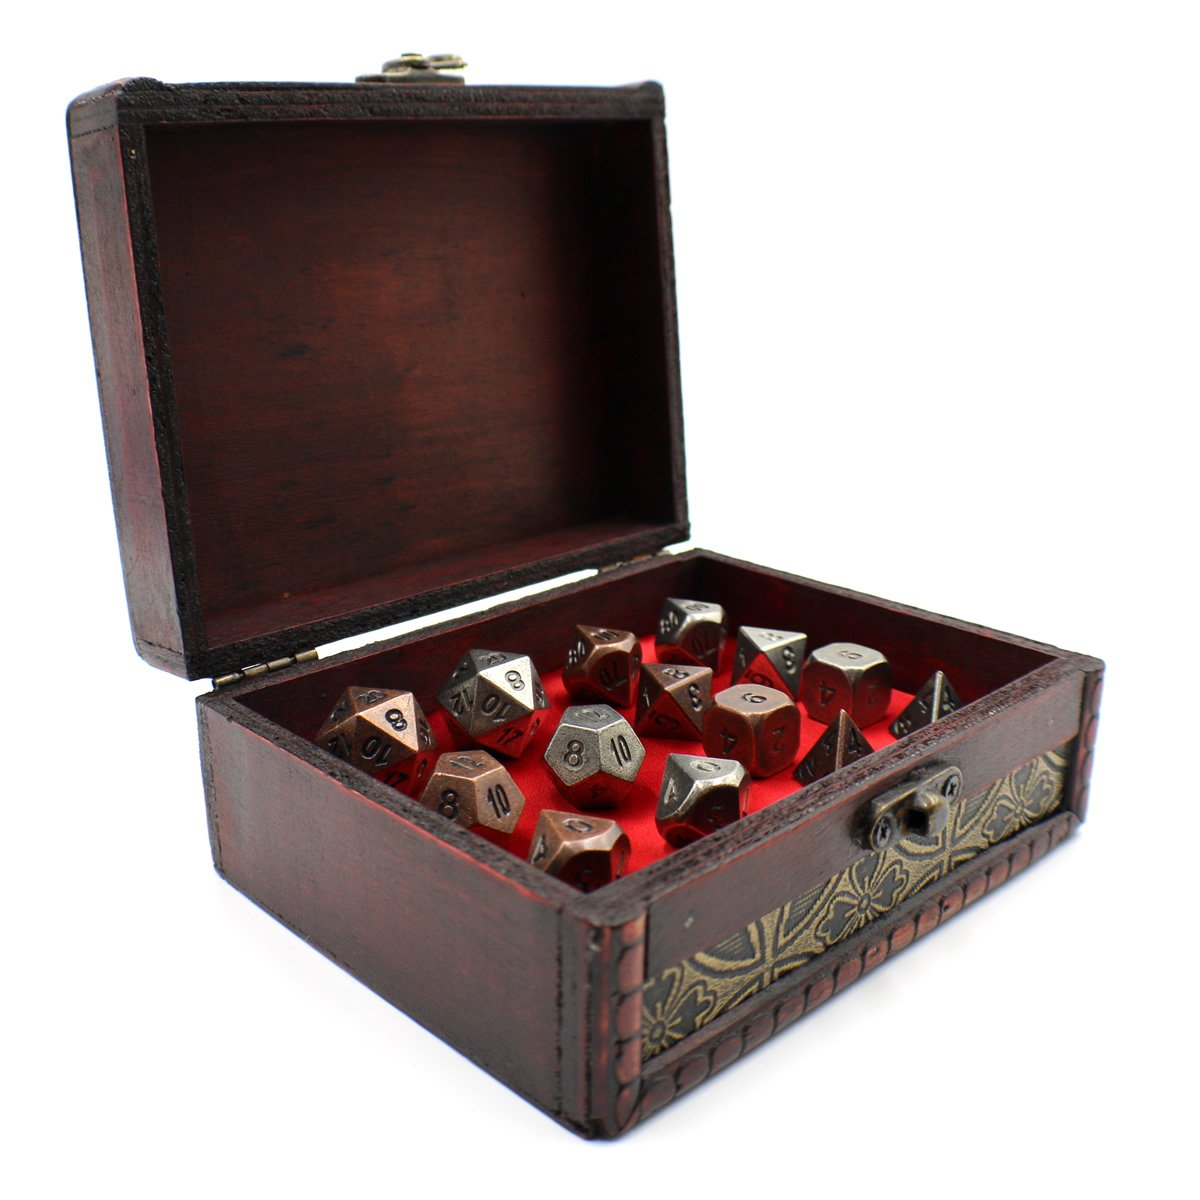 Twin Role Playing Metal Dice Sets with Storage Chest for Tabletop Games